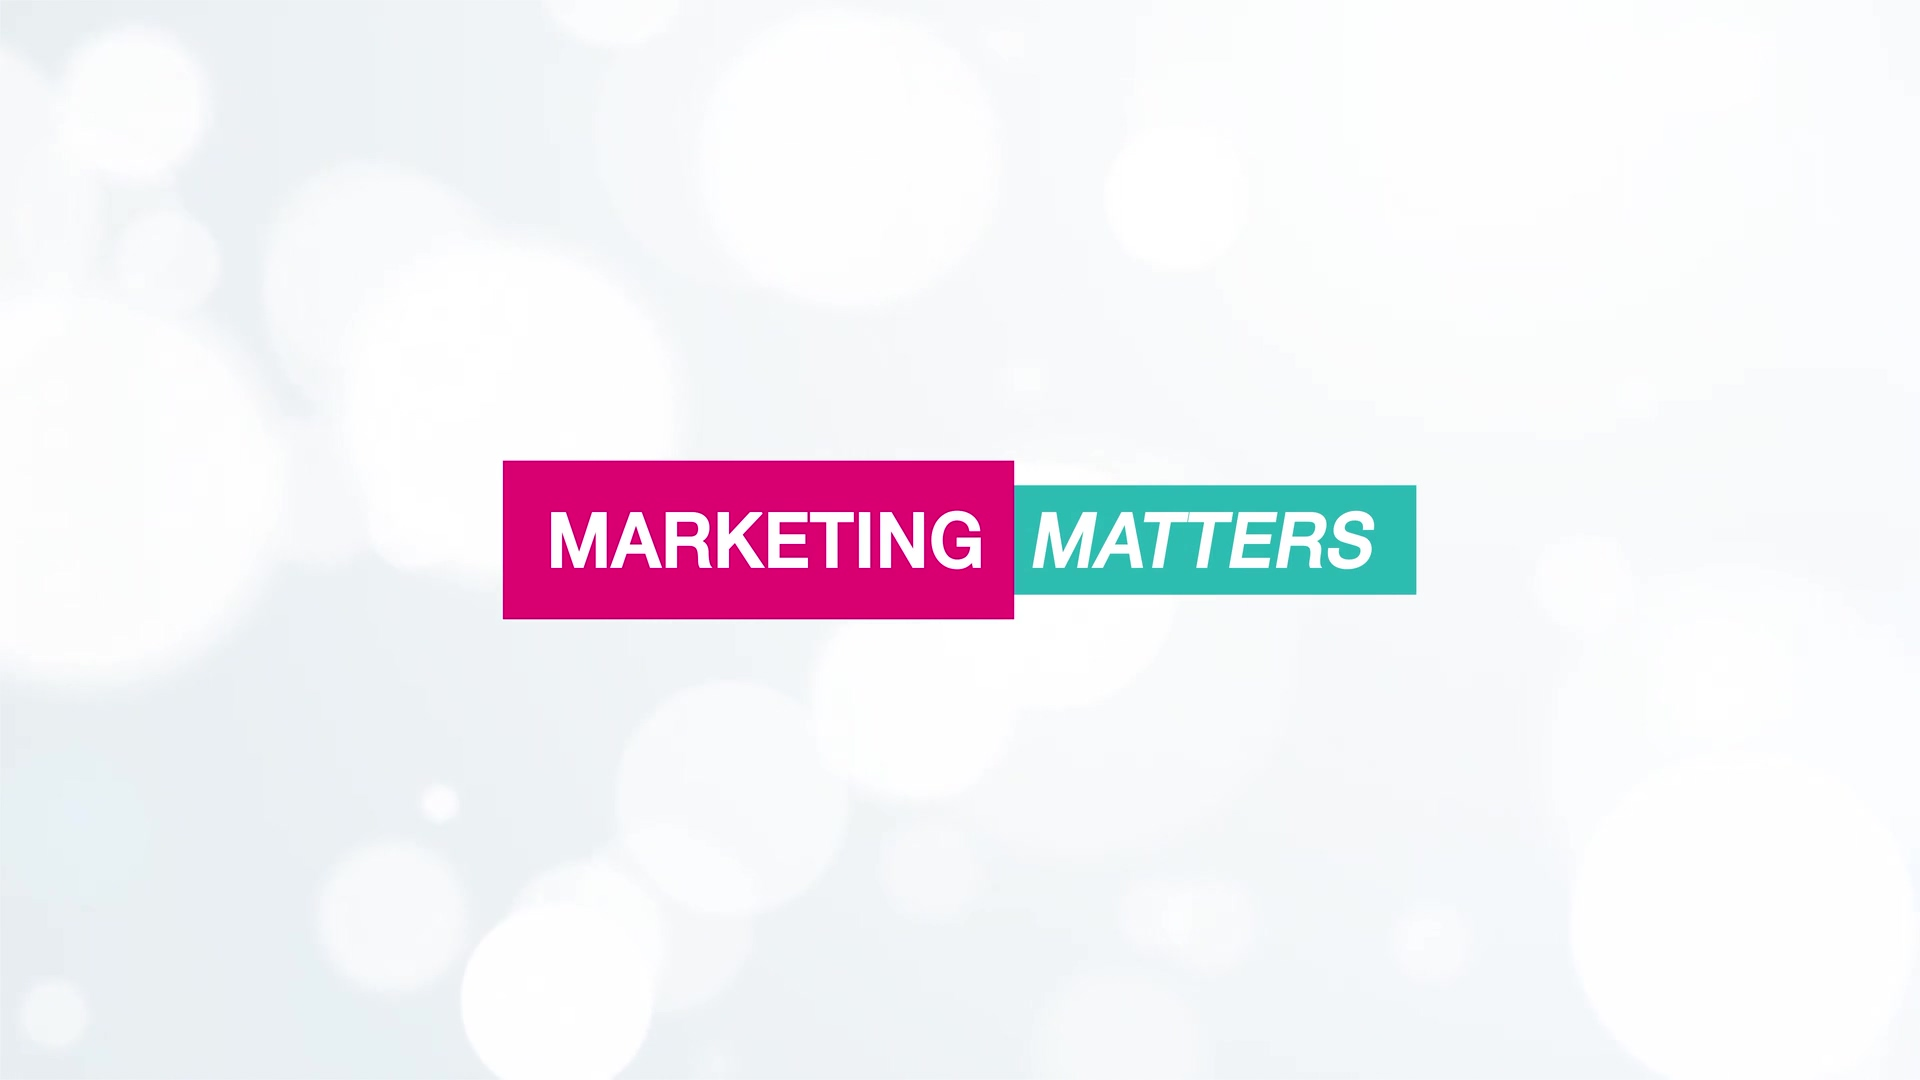 Video 01 MARKETING MATTERS